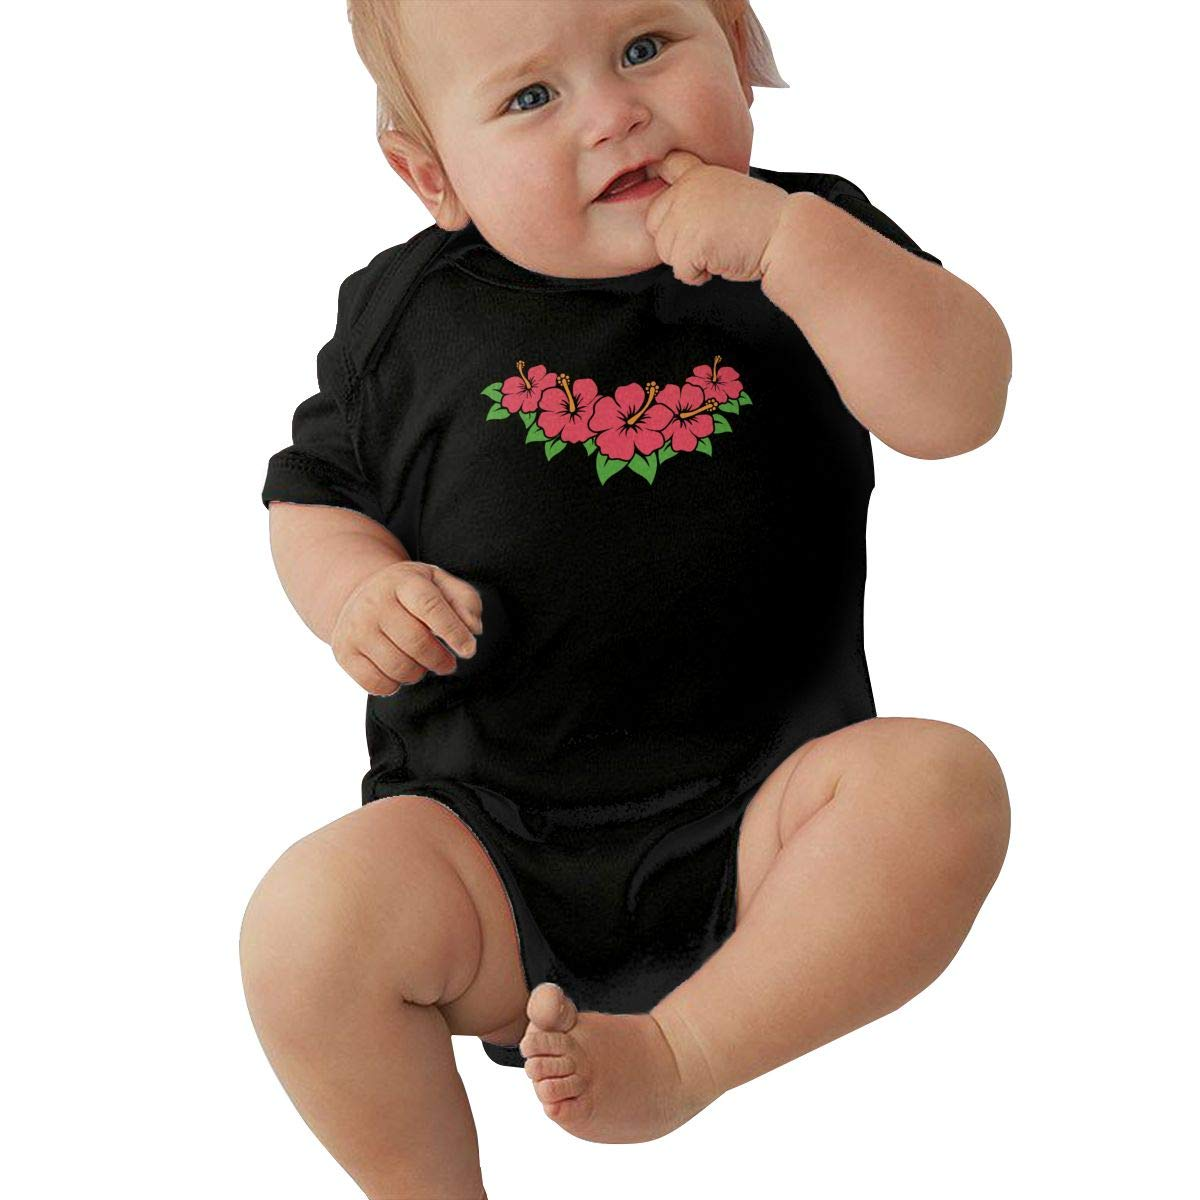 Hibiscus Toddler Baby Girl Boy Romper Jumpsuit Outfit Short Sleeve Bodysuit Tops Clothes